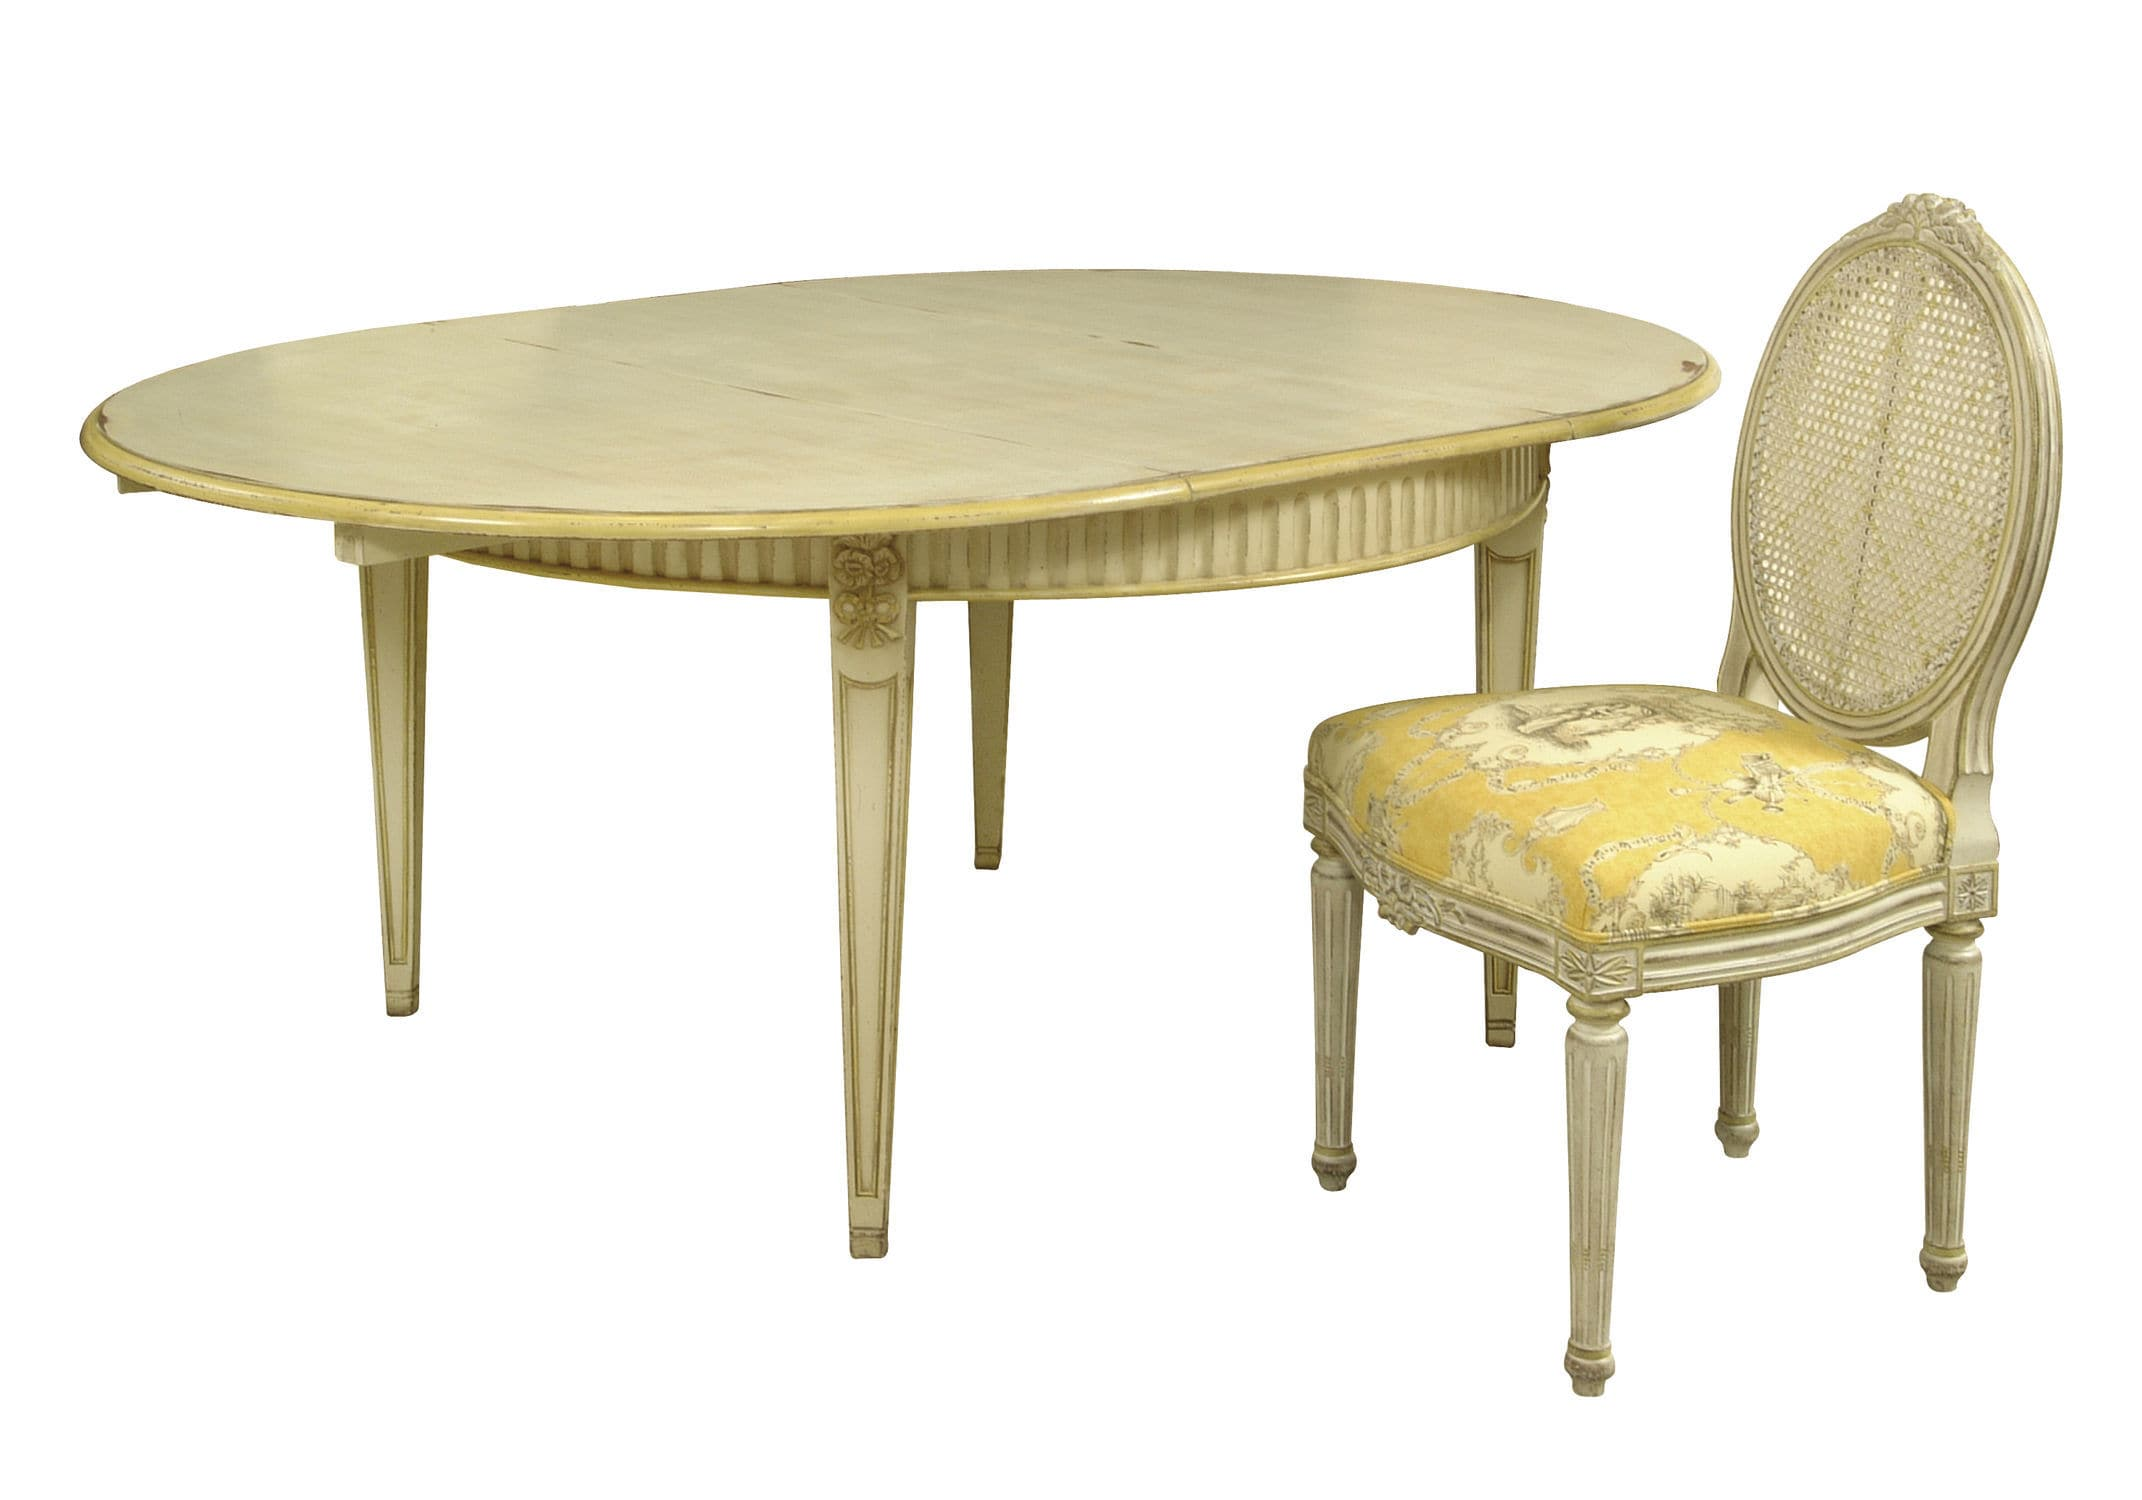 Louis XVI style dining table wooden rectangular round